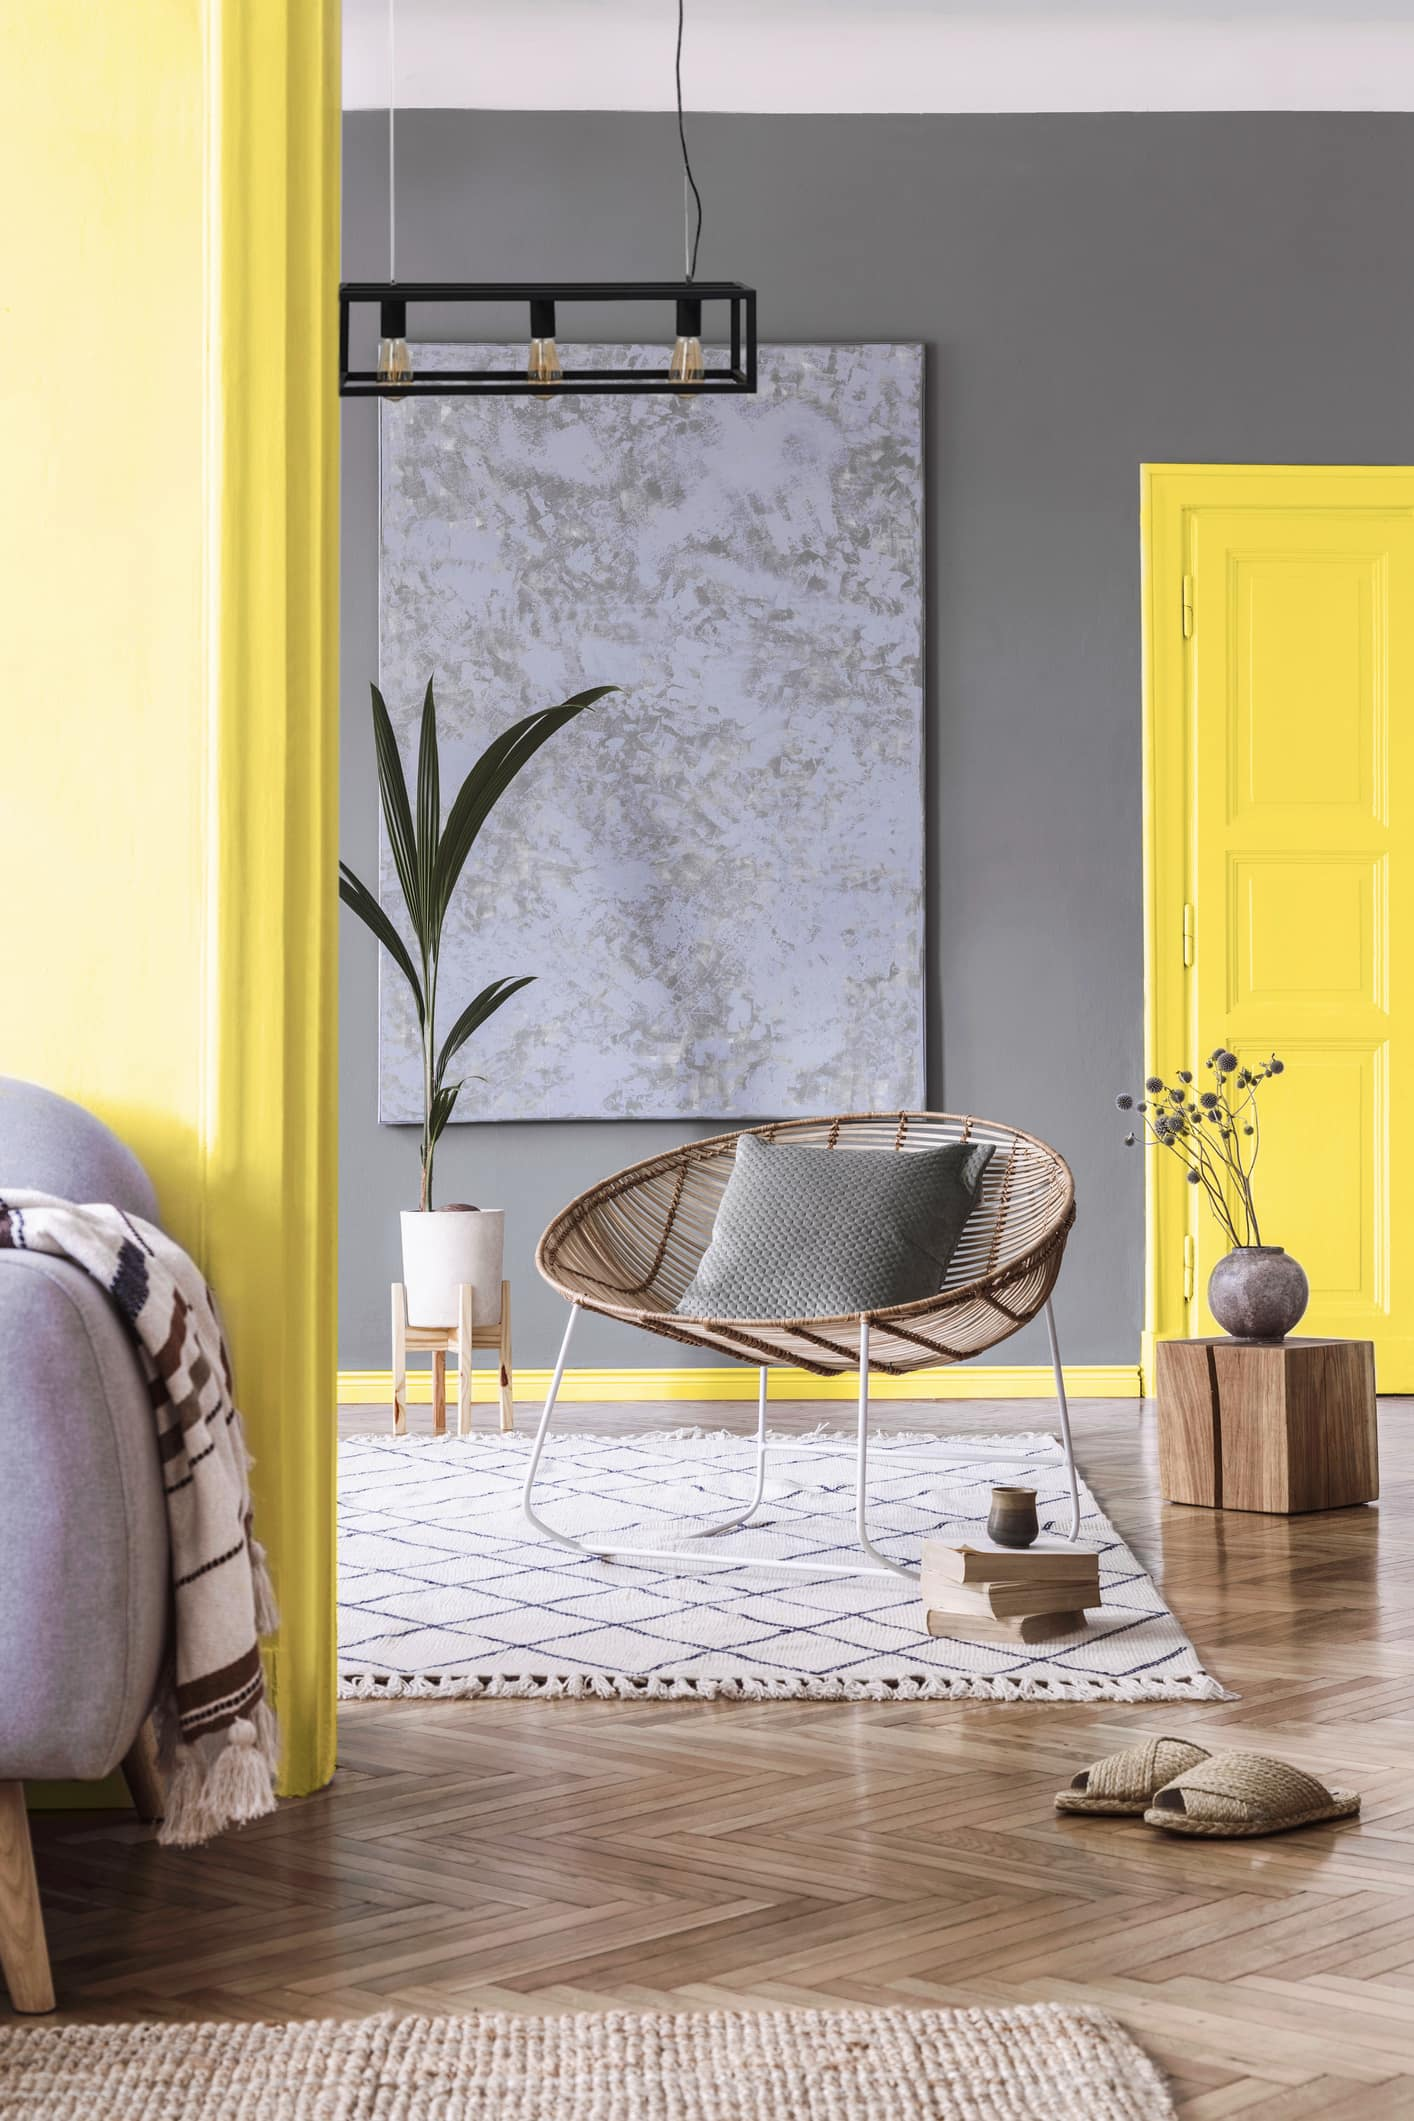 light fittings, grey walls, yellow door and bedroom, berber style rug with rattan chair